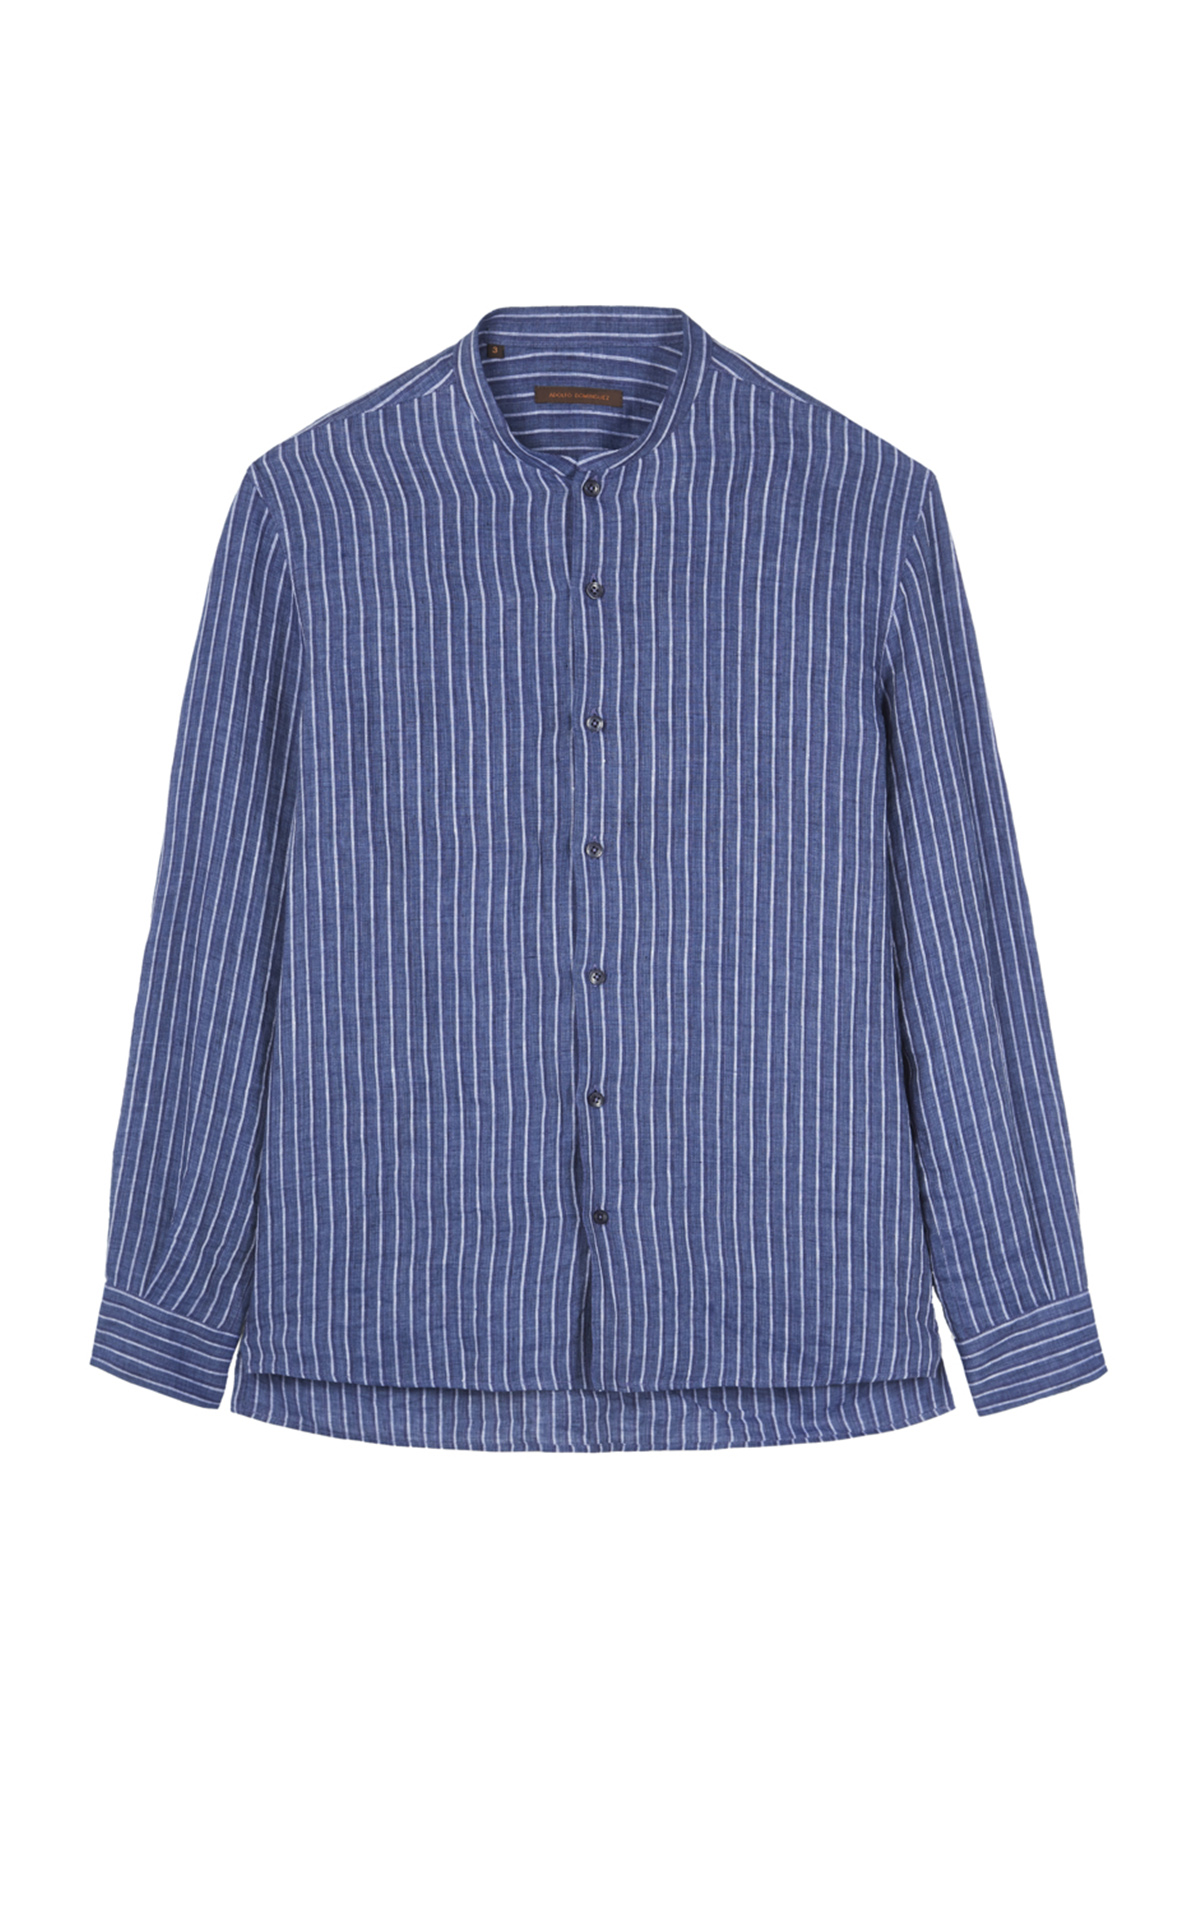 Blue linen striped shirt Adolfo Dominguez